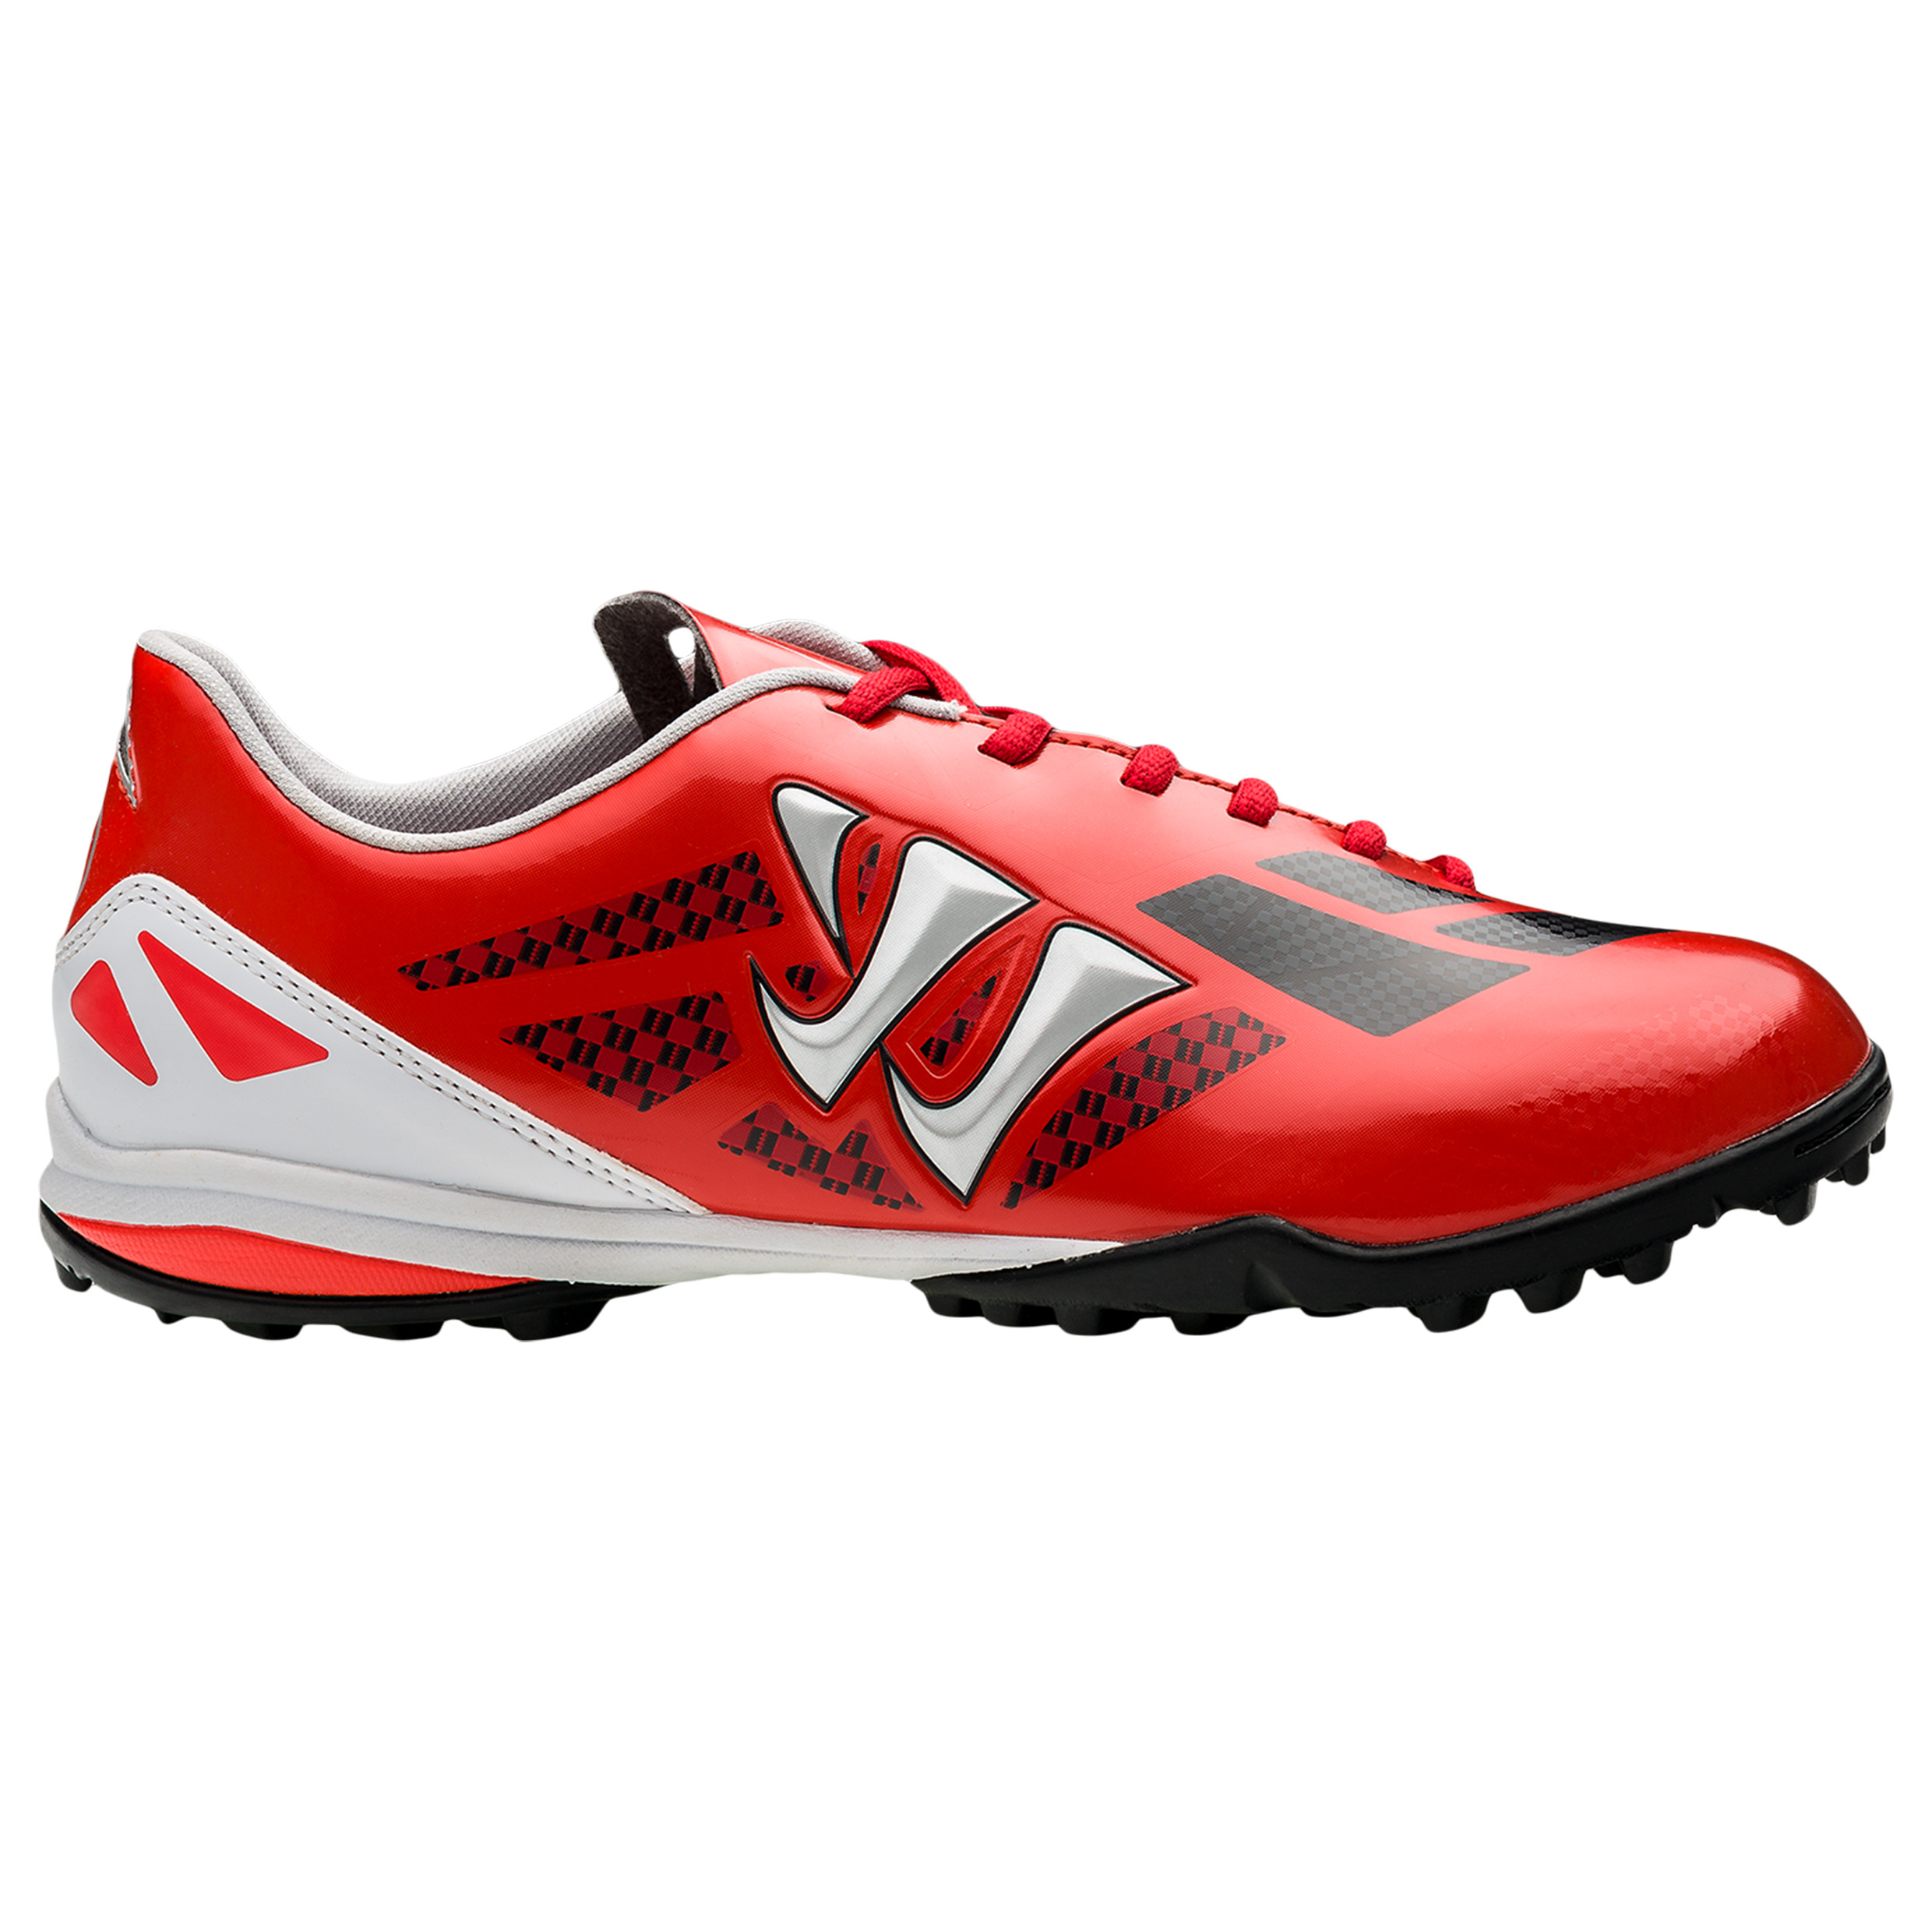 Warrior Gambler II Clash Astroturf Red